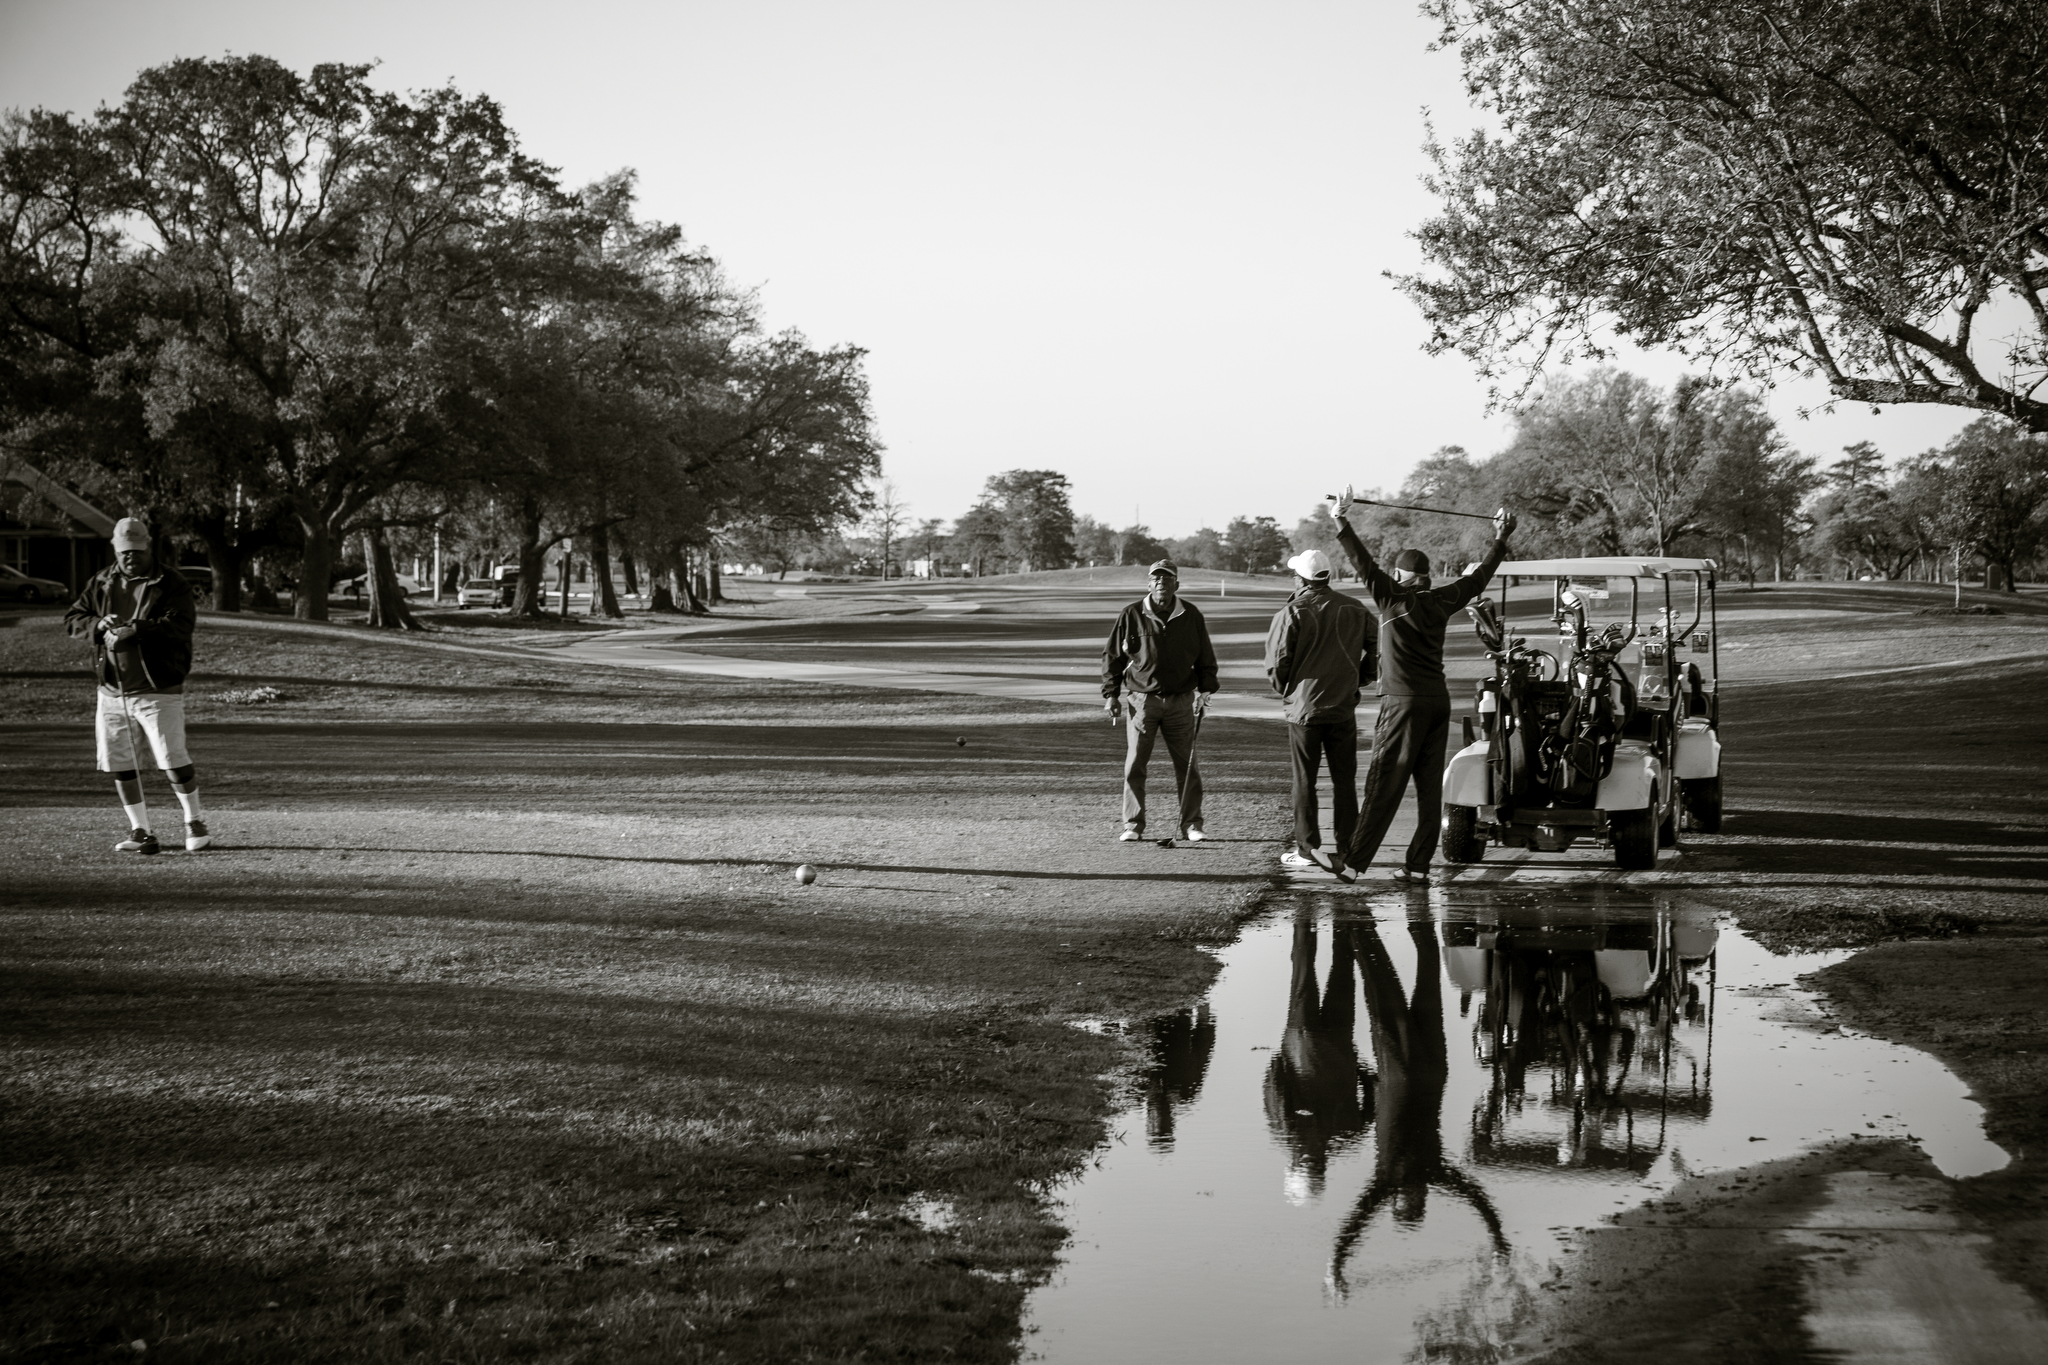 After a night of rain, golfers get ready on the first tee early on a Sunday morning.